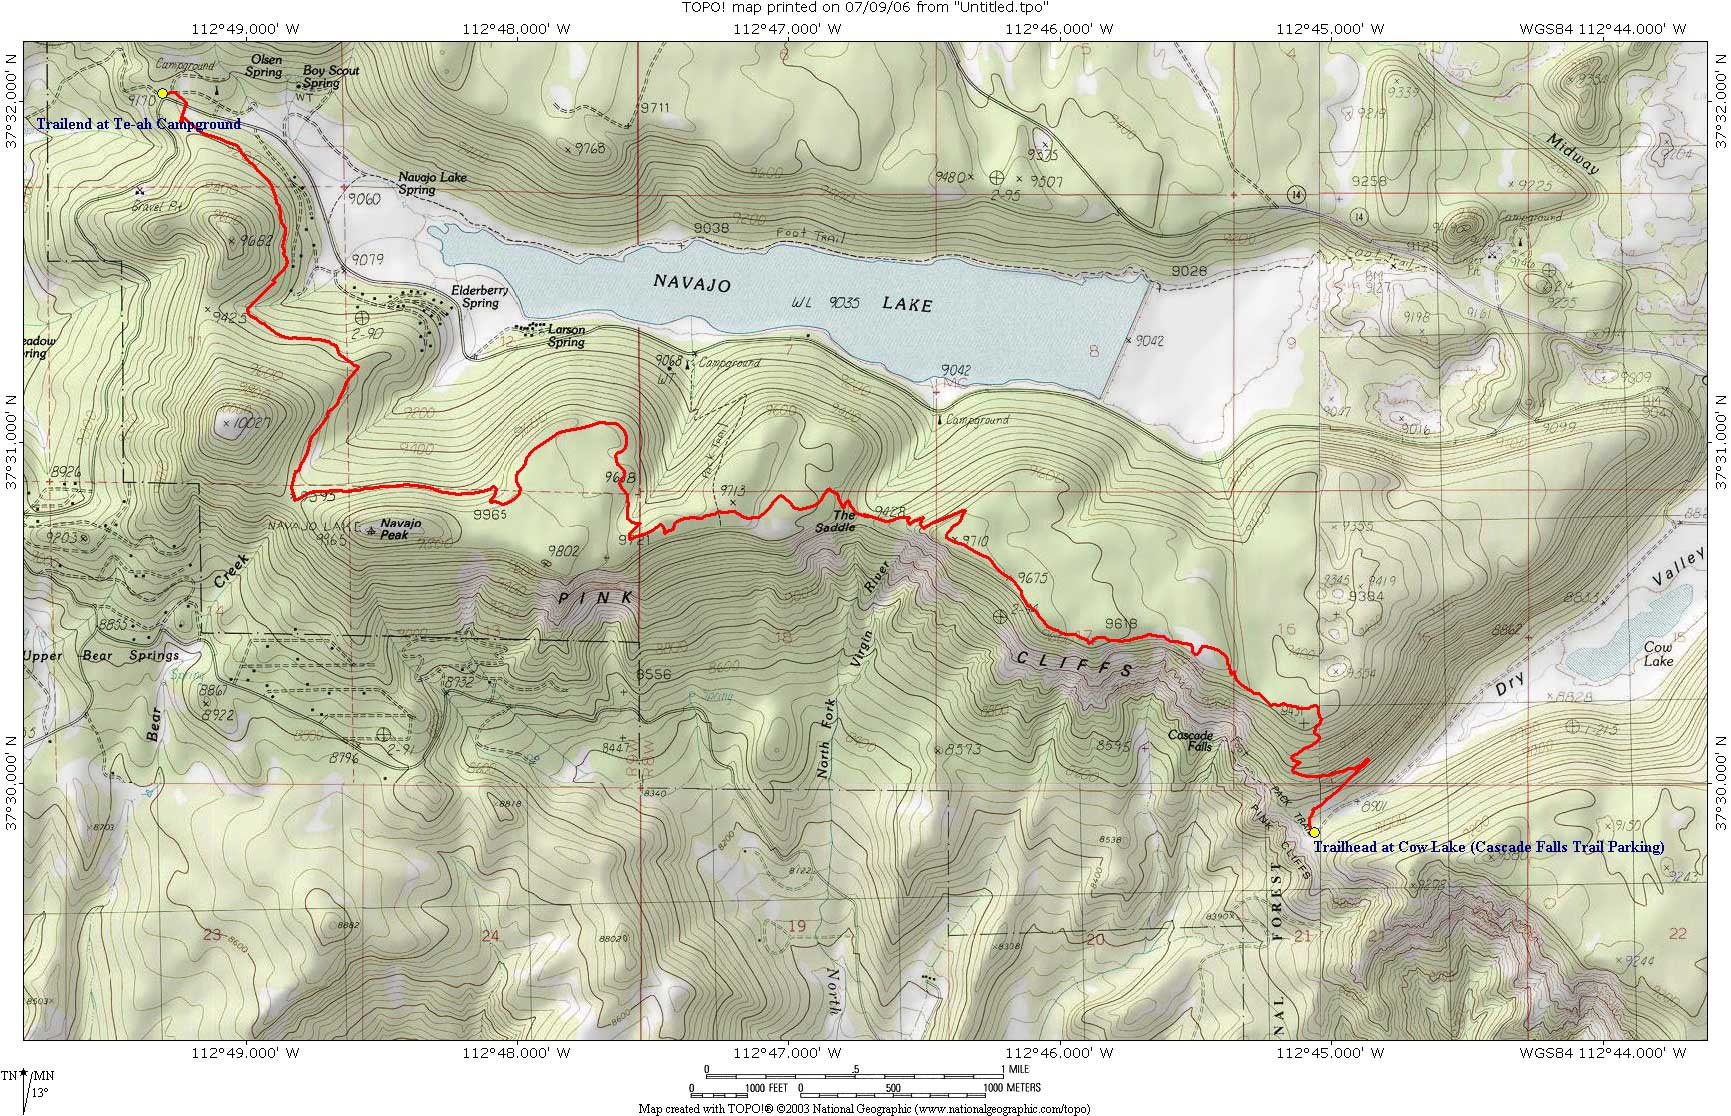 Topo Map Virgin River Rim Trail: Cascade Falls Trailhead to Te-ah Trialhead